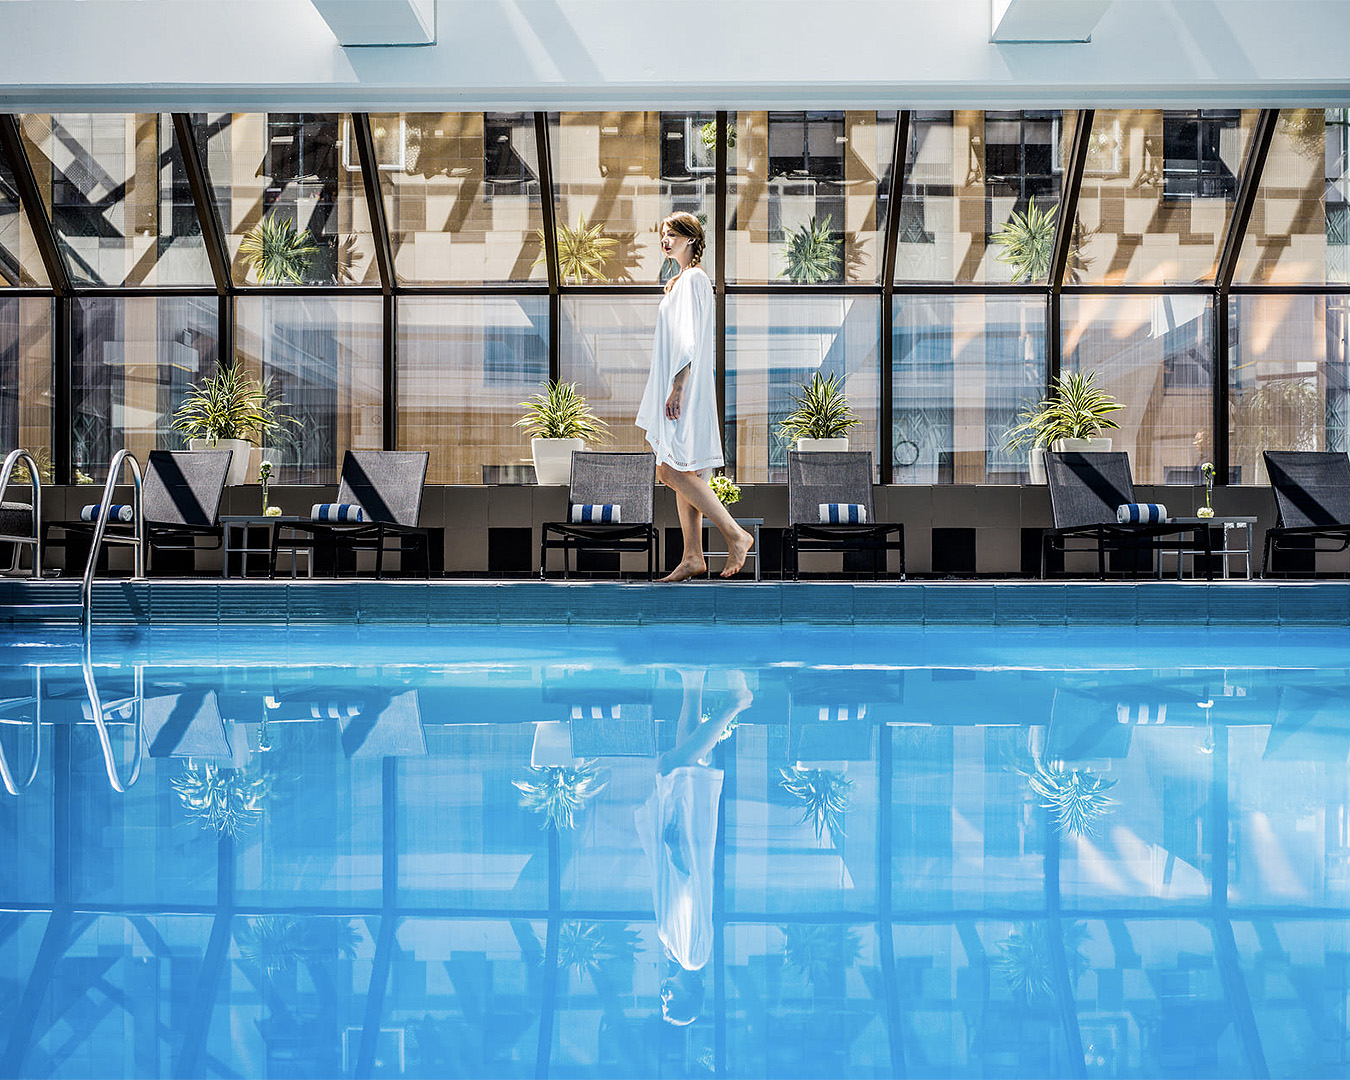 A woman walks by the large pool at the Intercontinental Hotel in Wellington, one of the best luxury hotels in New Zealand.